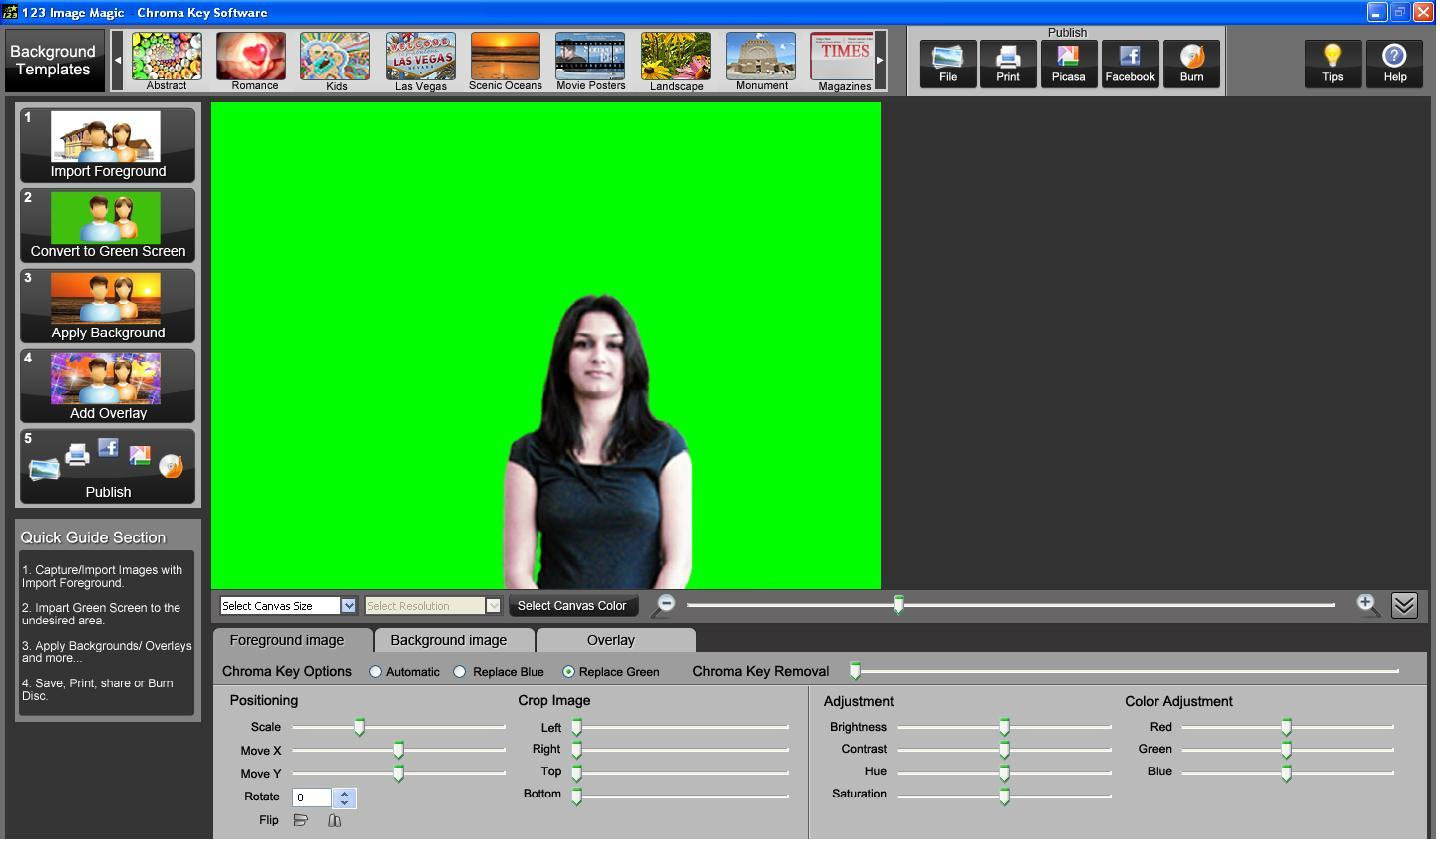 Chroma Key - Free Chroma Key Software Download1440